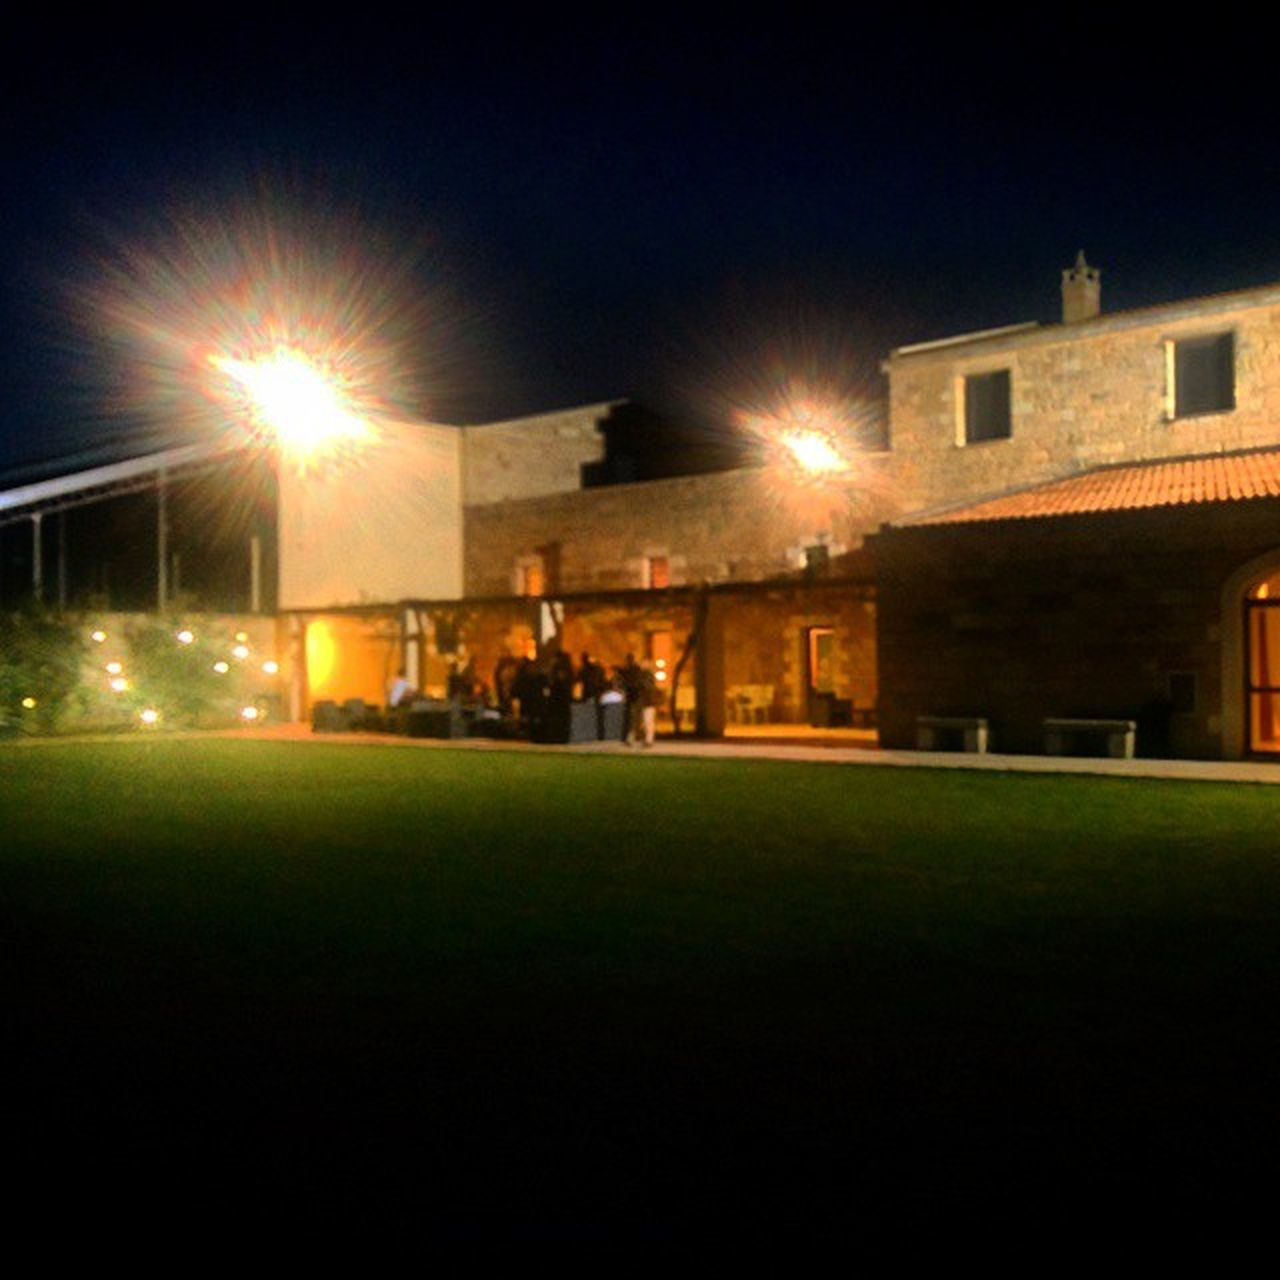 illuminated, building exterior, architecture, built structure, night, grass, outdoors, street light, city, no people, soccer field, sky